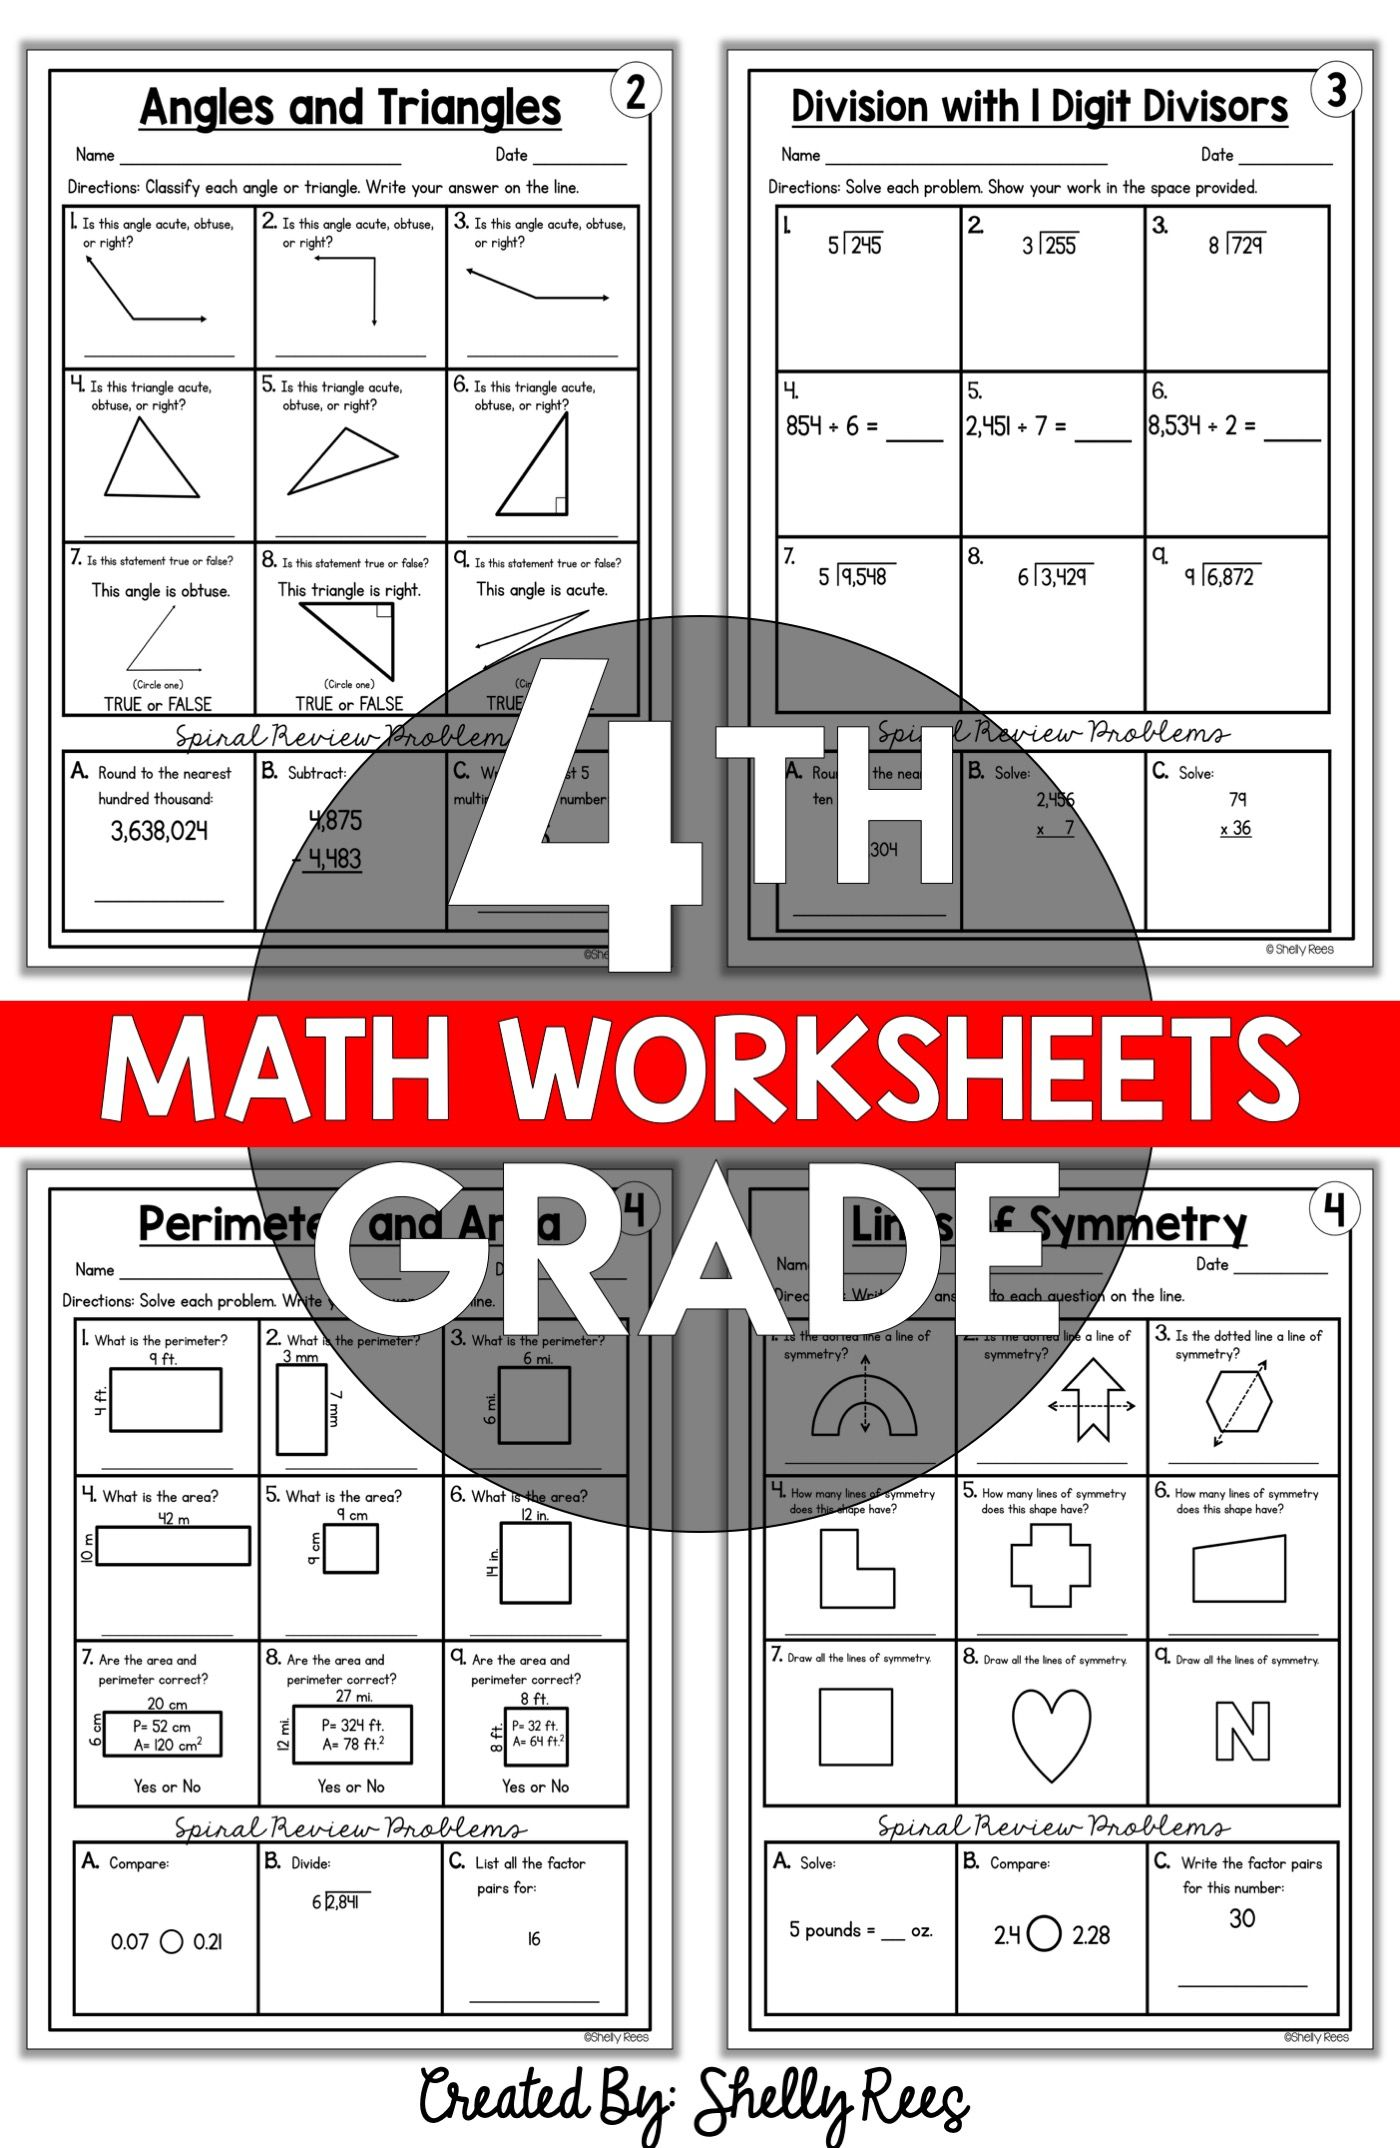 Printable 4th Grade Math Worksheets That Are Fun For